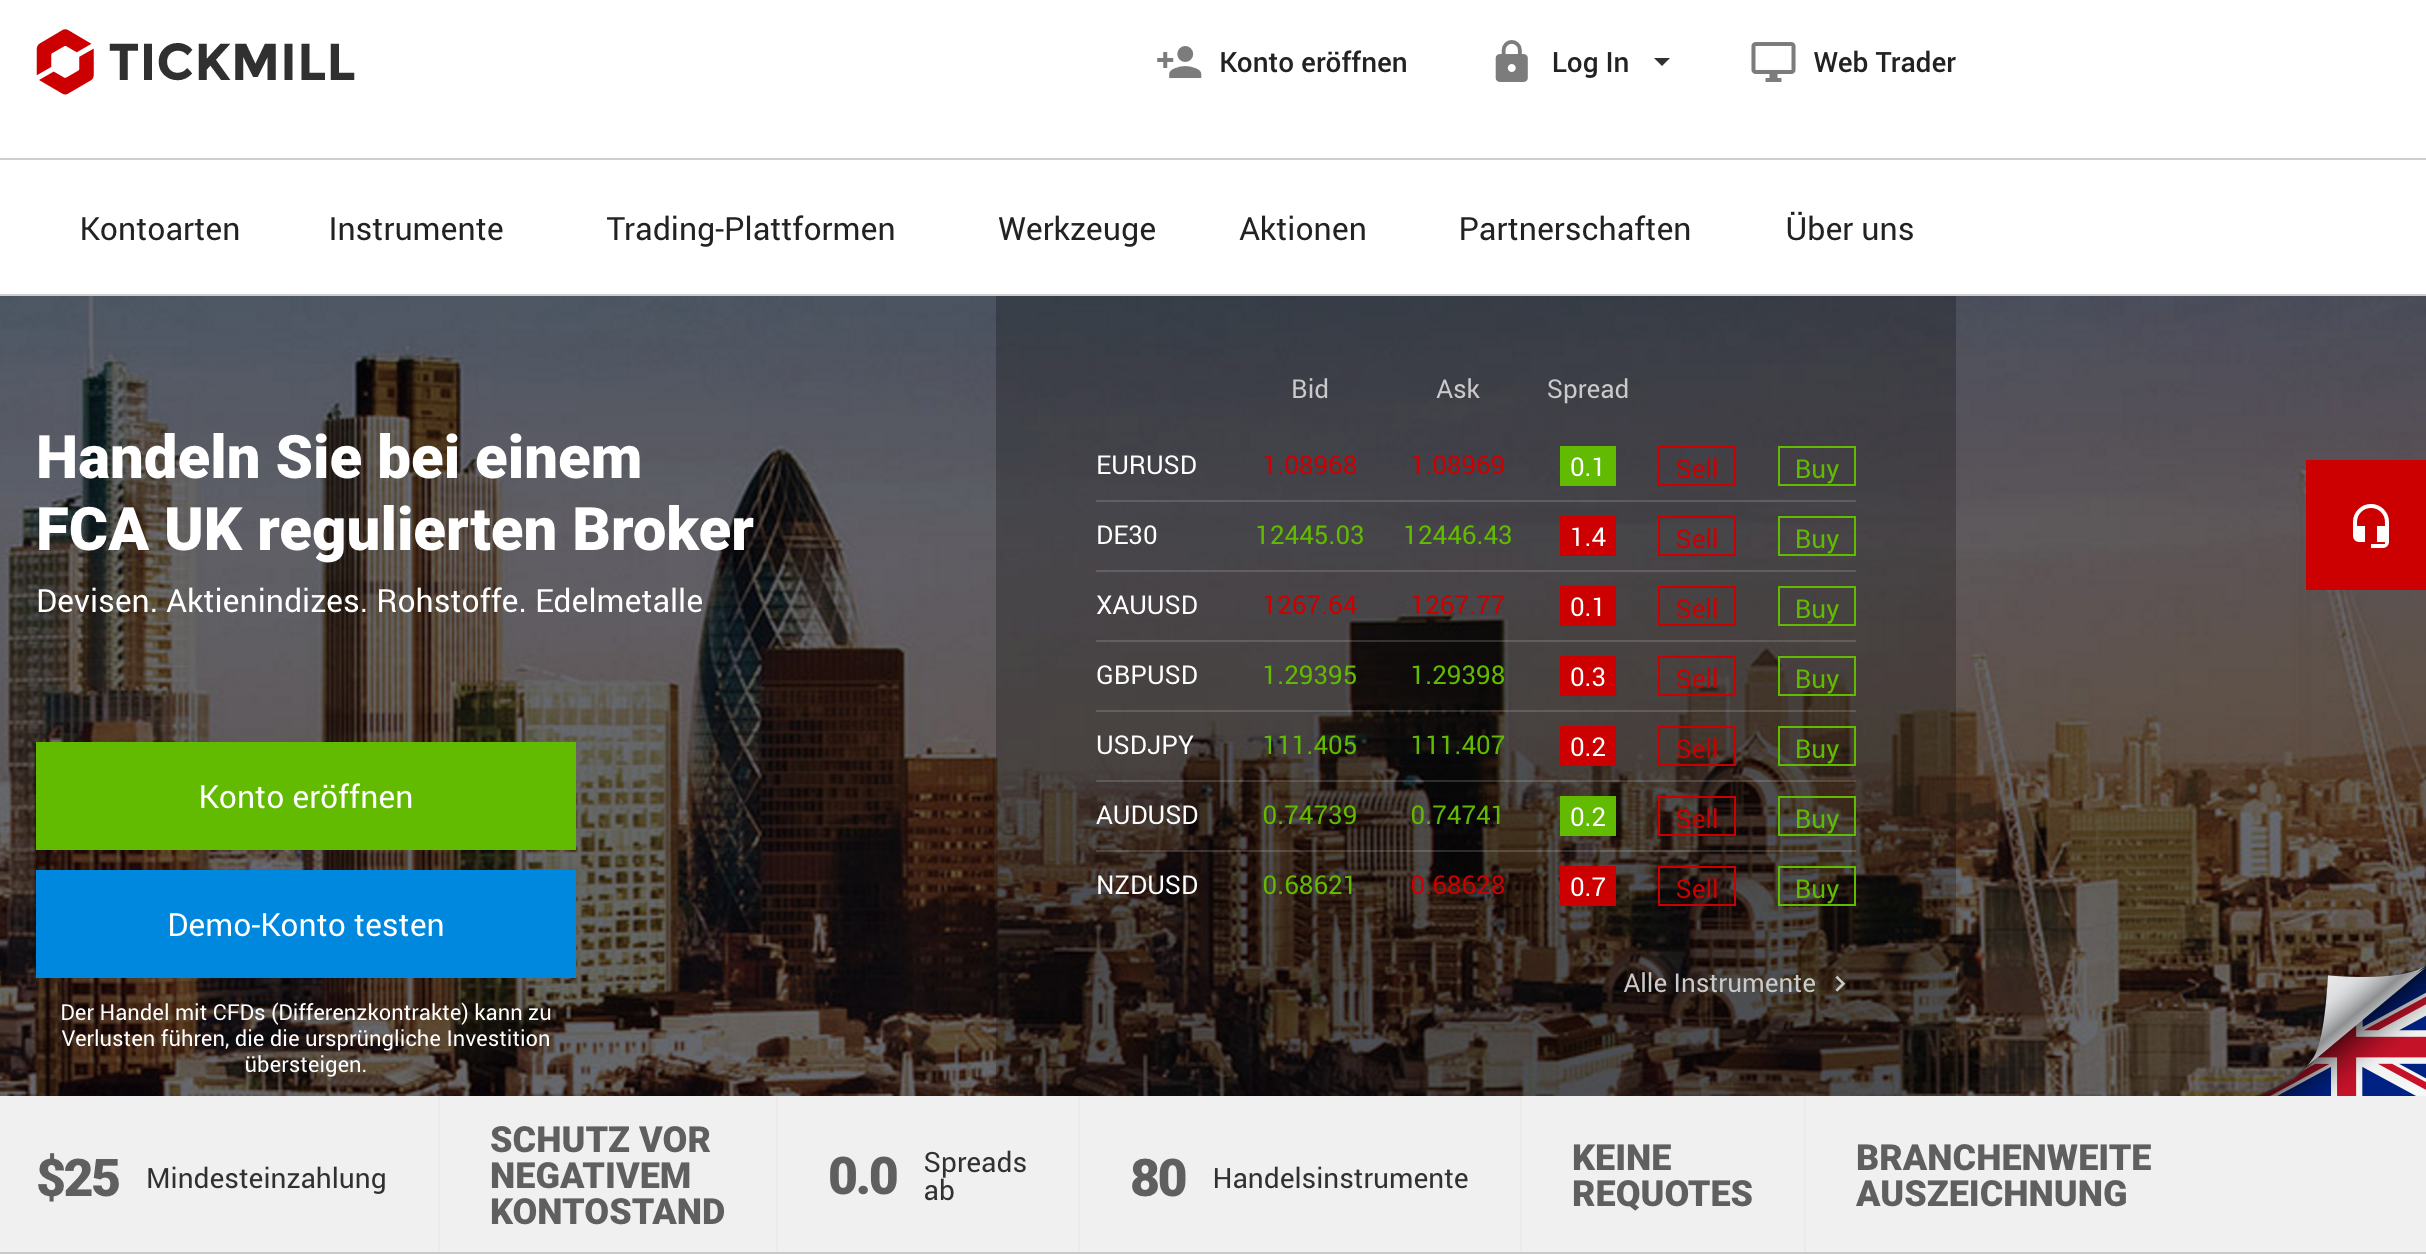 Die Website des Brokers Tickmill